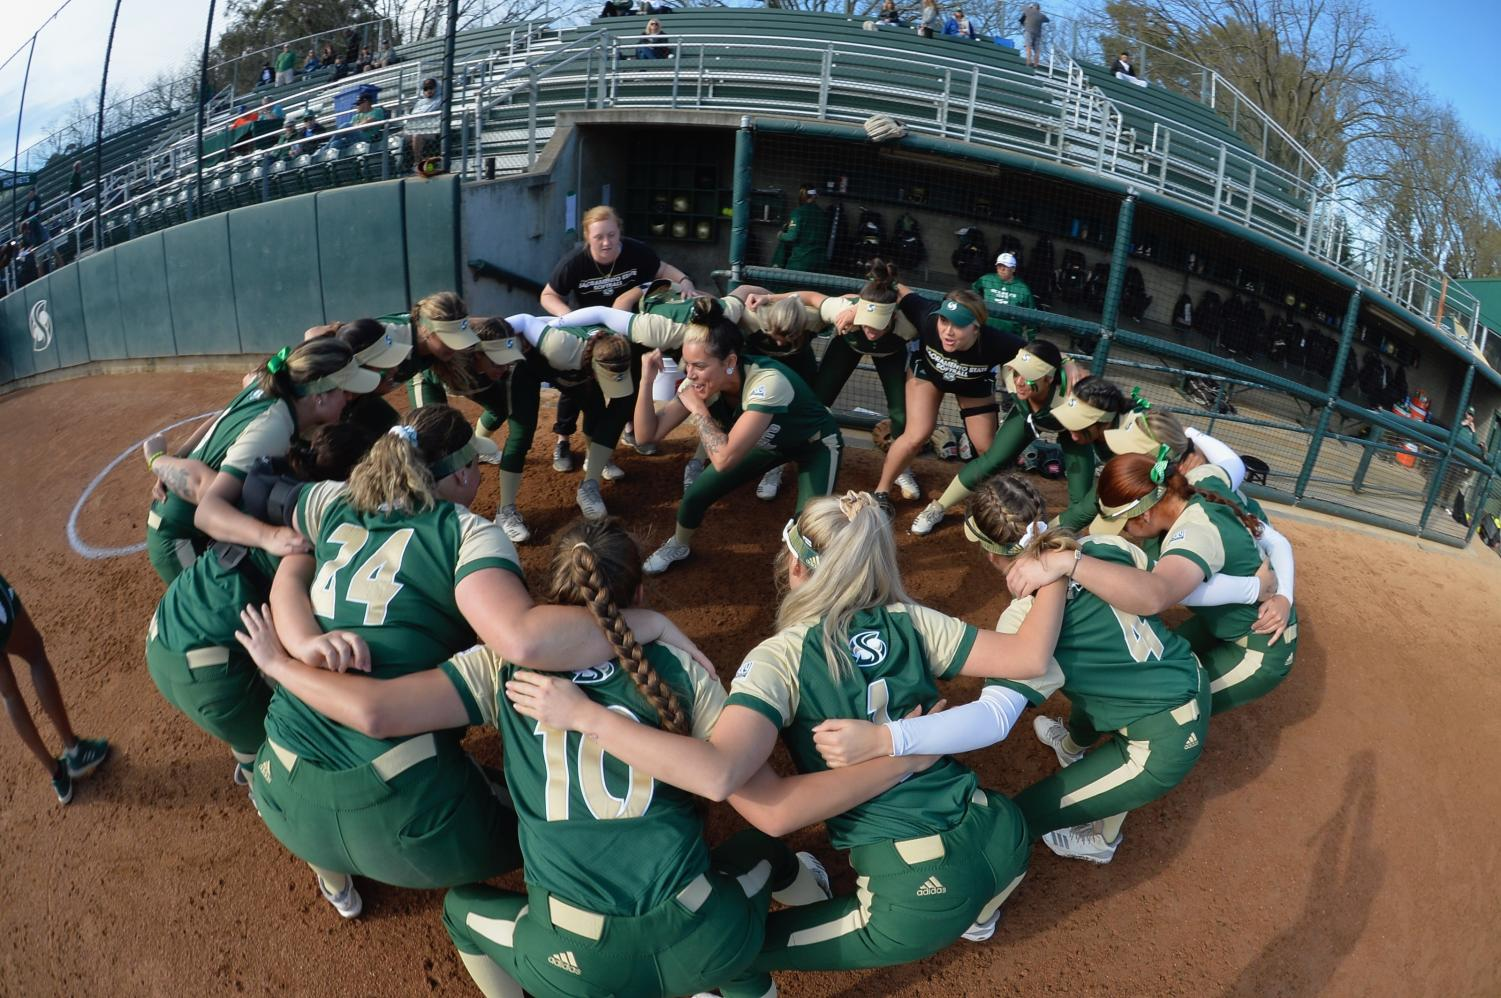 Sac State's softball team huddles around sophomore outfielder Charizma Guzman as she hypes the team up during a pre-game ritual. The team has many superstitions, from some players braiding their hair a certain way, to never touching the foul line as they leave the field.